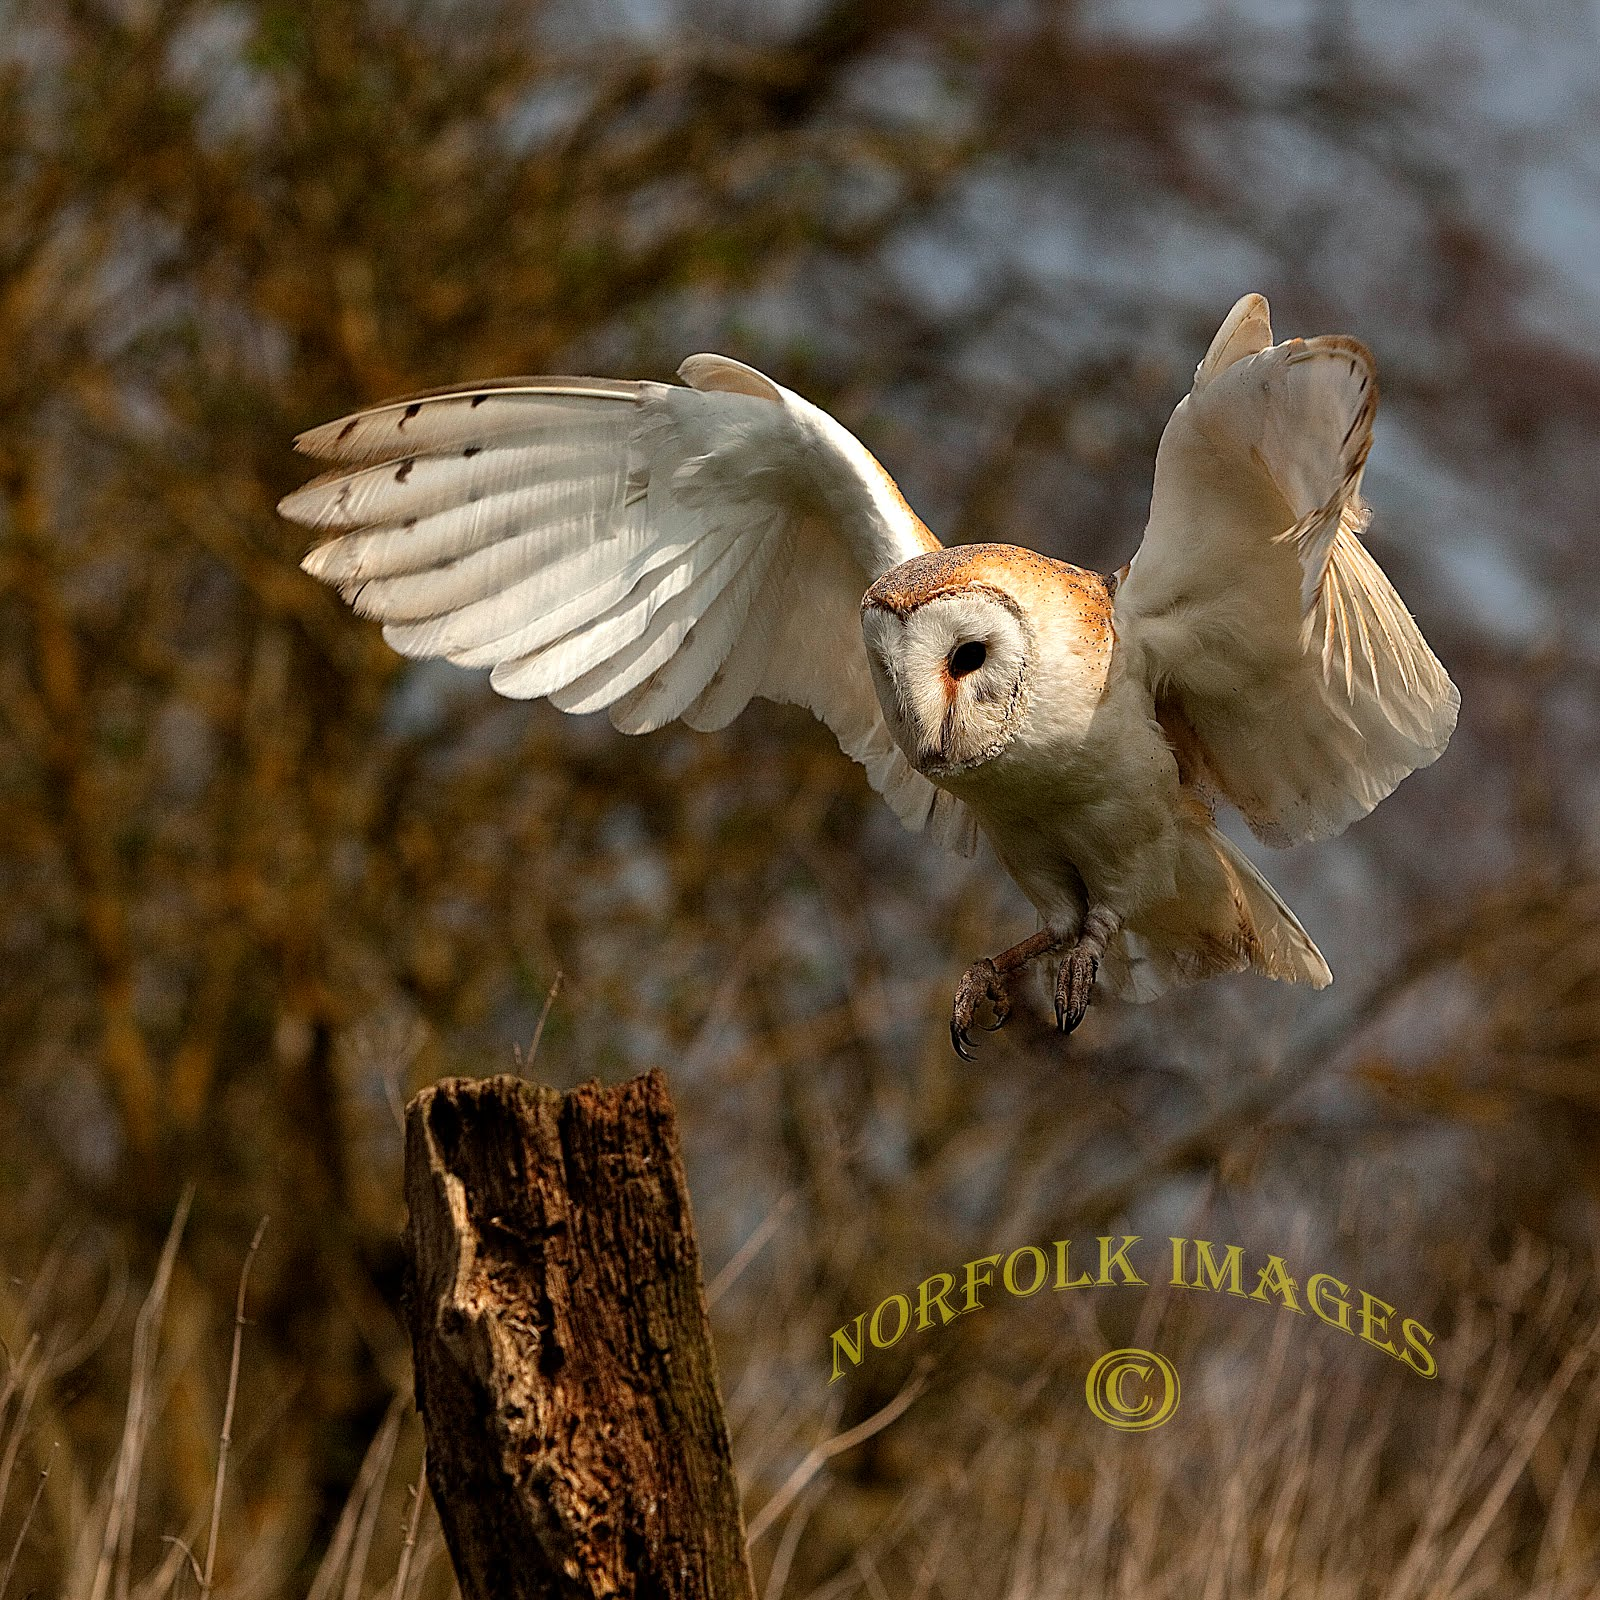 Norfolk Images Gallery: BARN OWLS